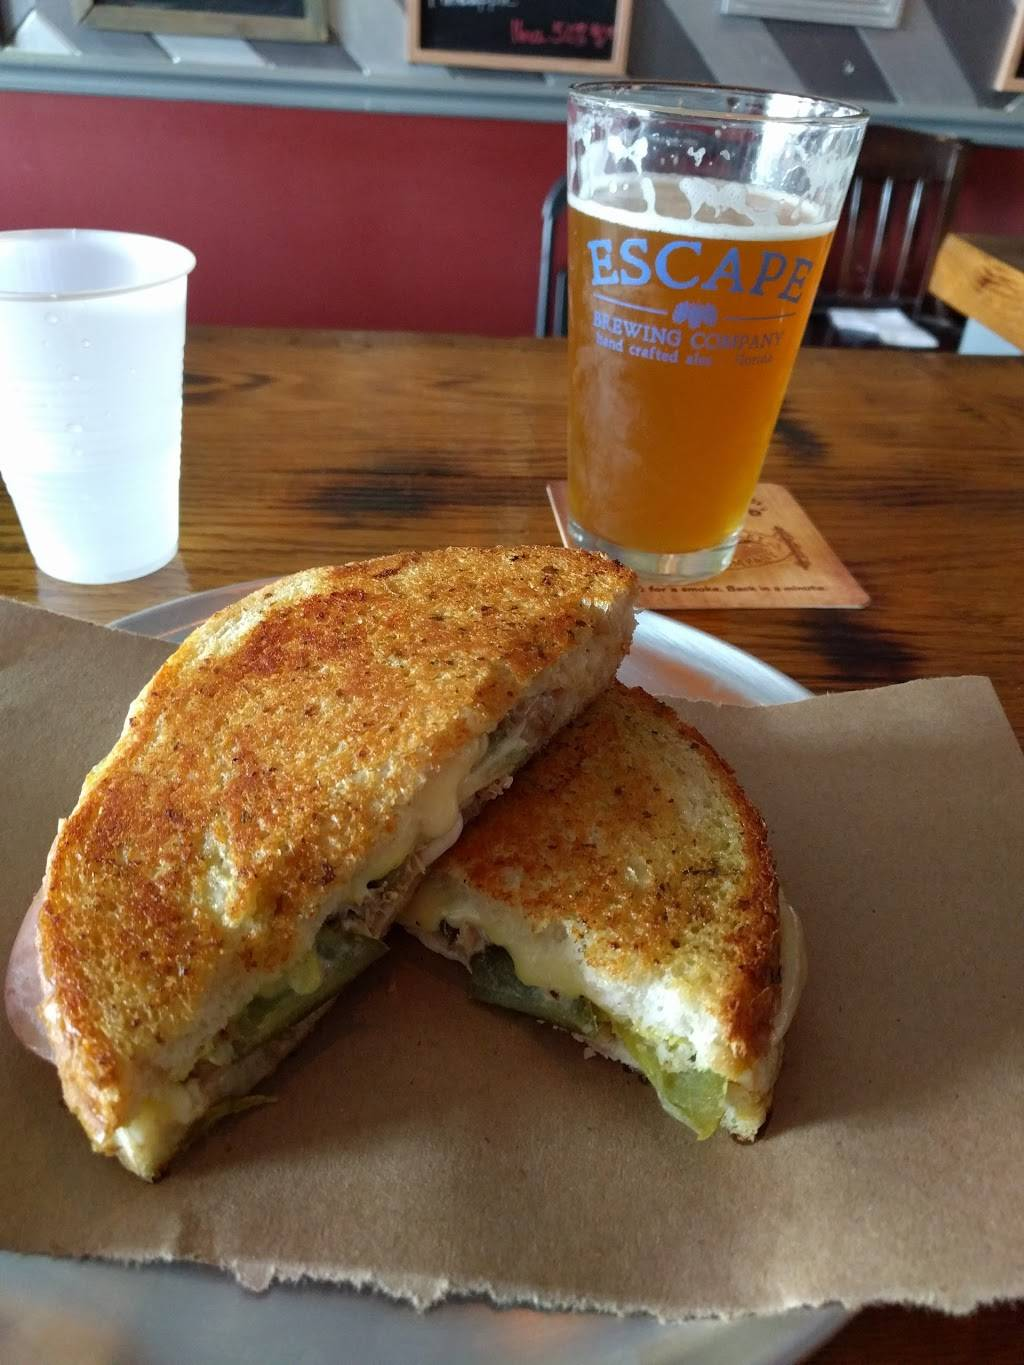 The Pint and Brew | restaurant | 3261 Tampa Rd, Palm Harbor, FL 34684, USA | 7275159946 OR +1 727-515-9946